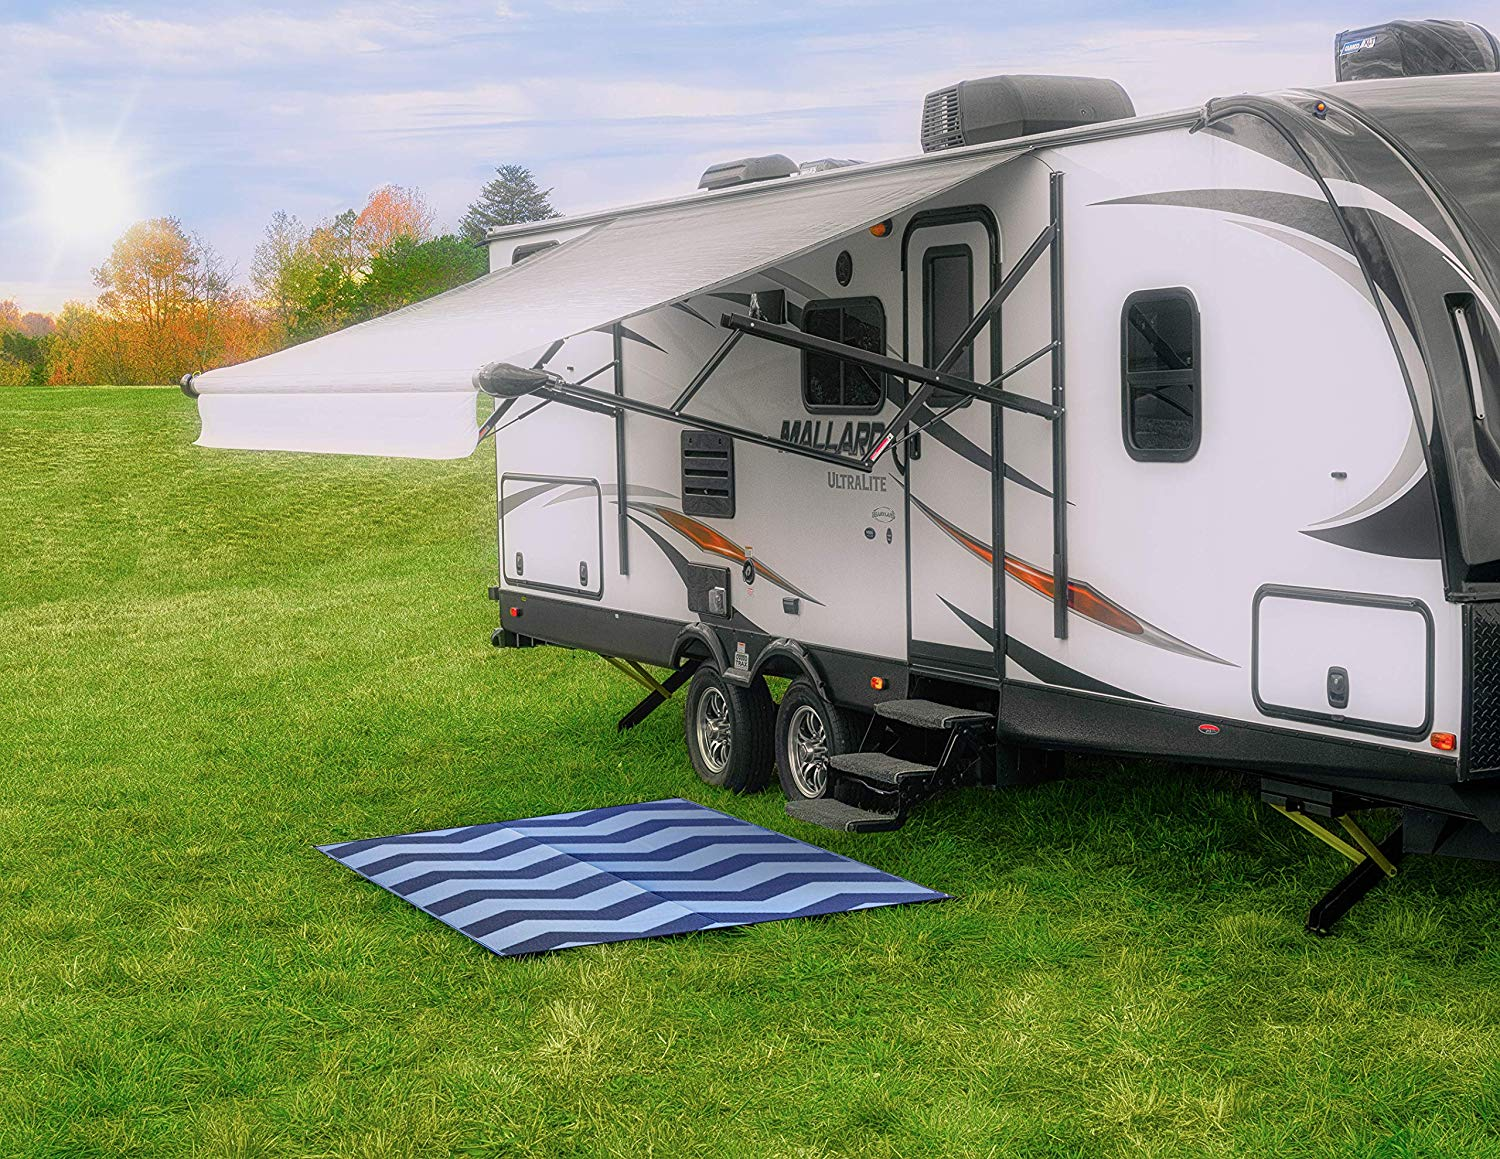 41 Gifts For New RV Owners: The Ultimate Gift Guide